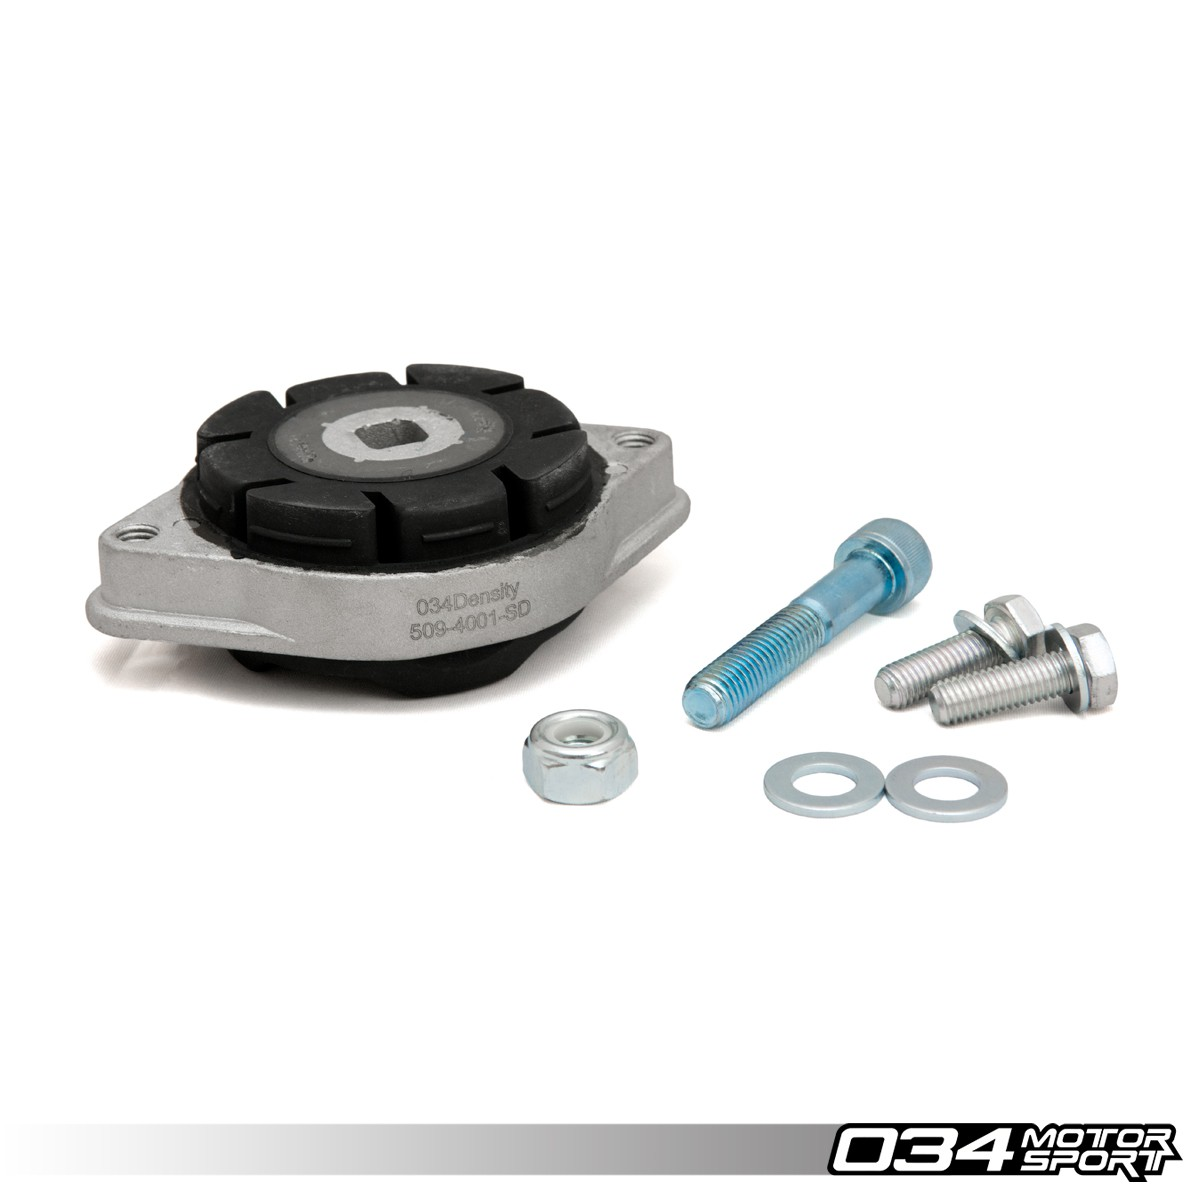 Transmission Mount, Density Line, 6-Speed Manual & CVT B6/B7 Audi